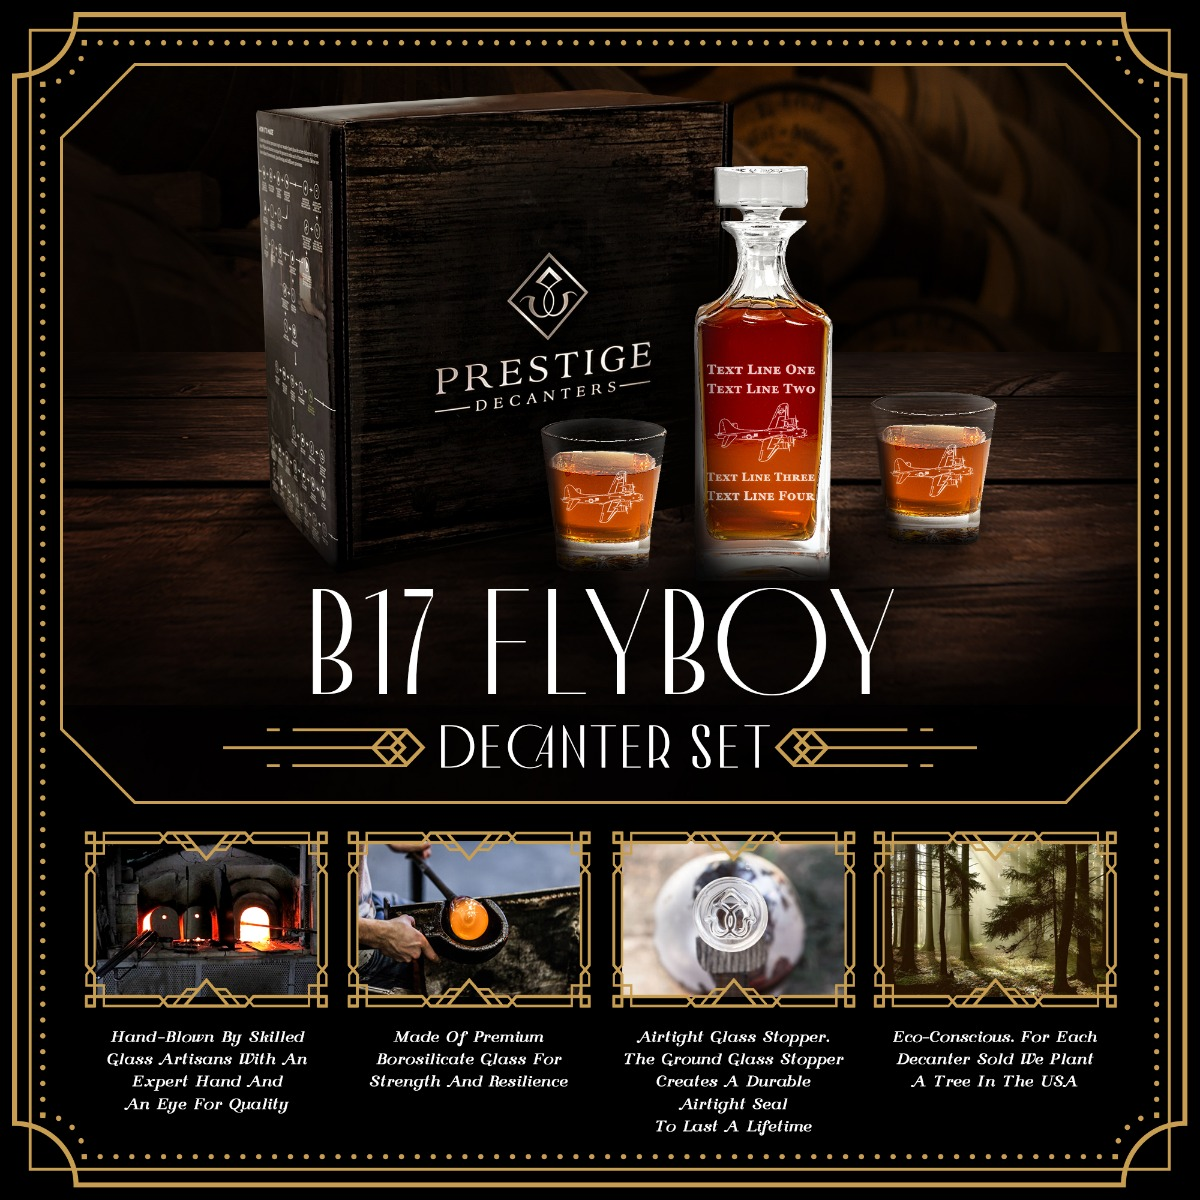 Features of B17 Flyboy Decanter Set